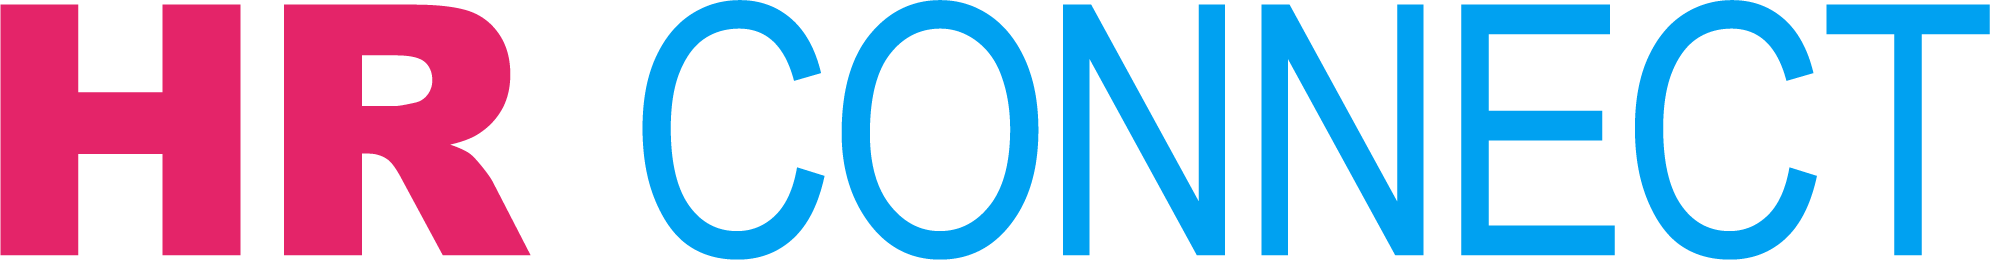 HR-Connect-дlogo